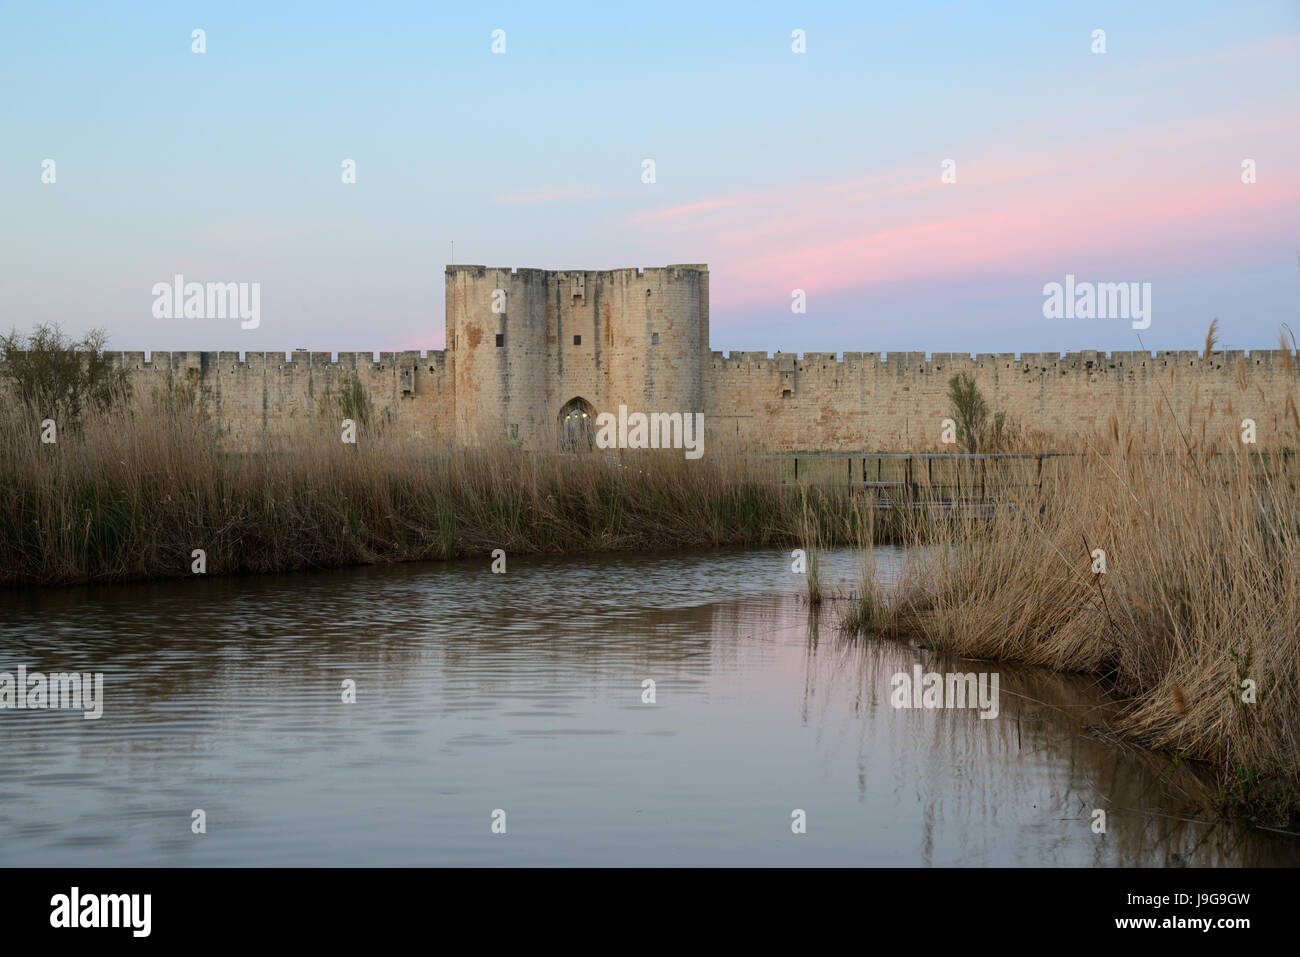 Dusk or Sunset over the Medieval Southern Walls of the Medieval Walled Town of Aigues-Mortes Camargue France - Stock Image